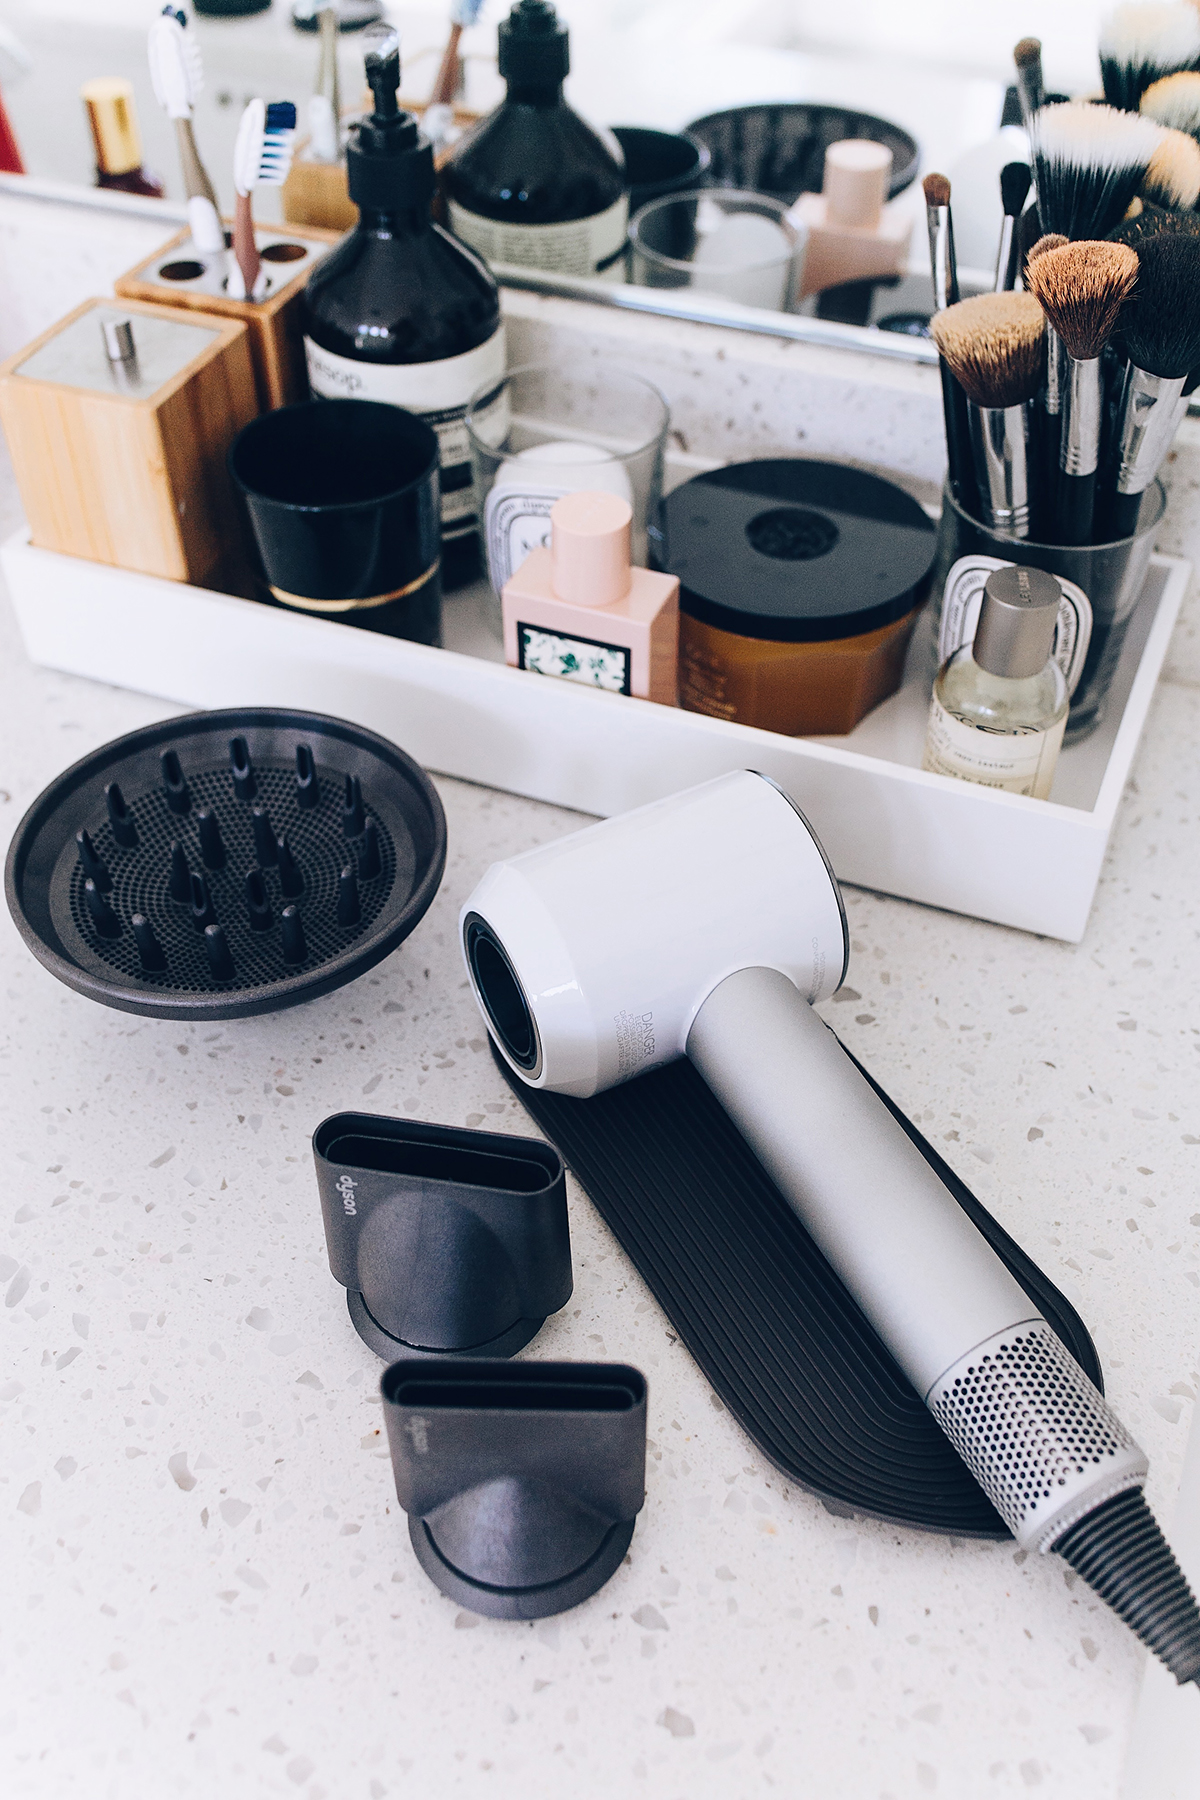 Dyson Hair Dryer with Attachments